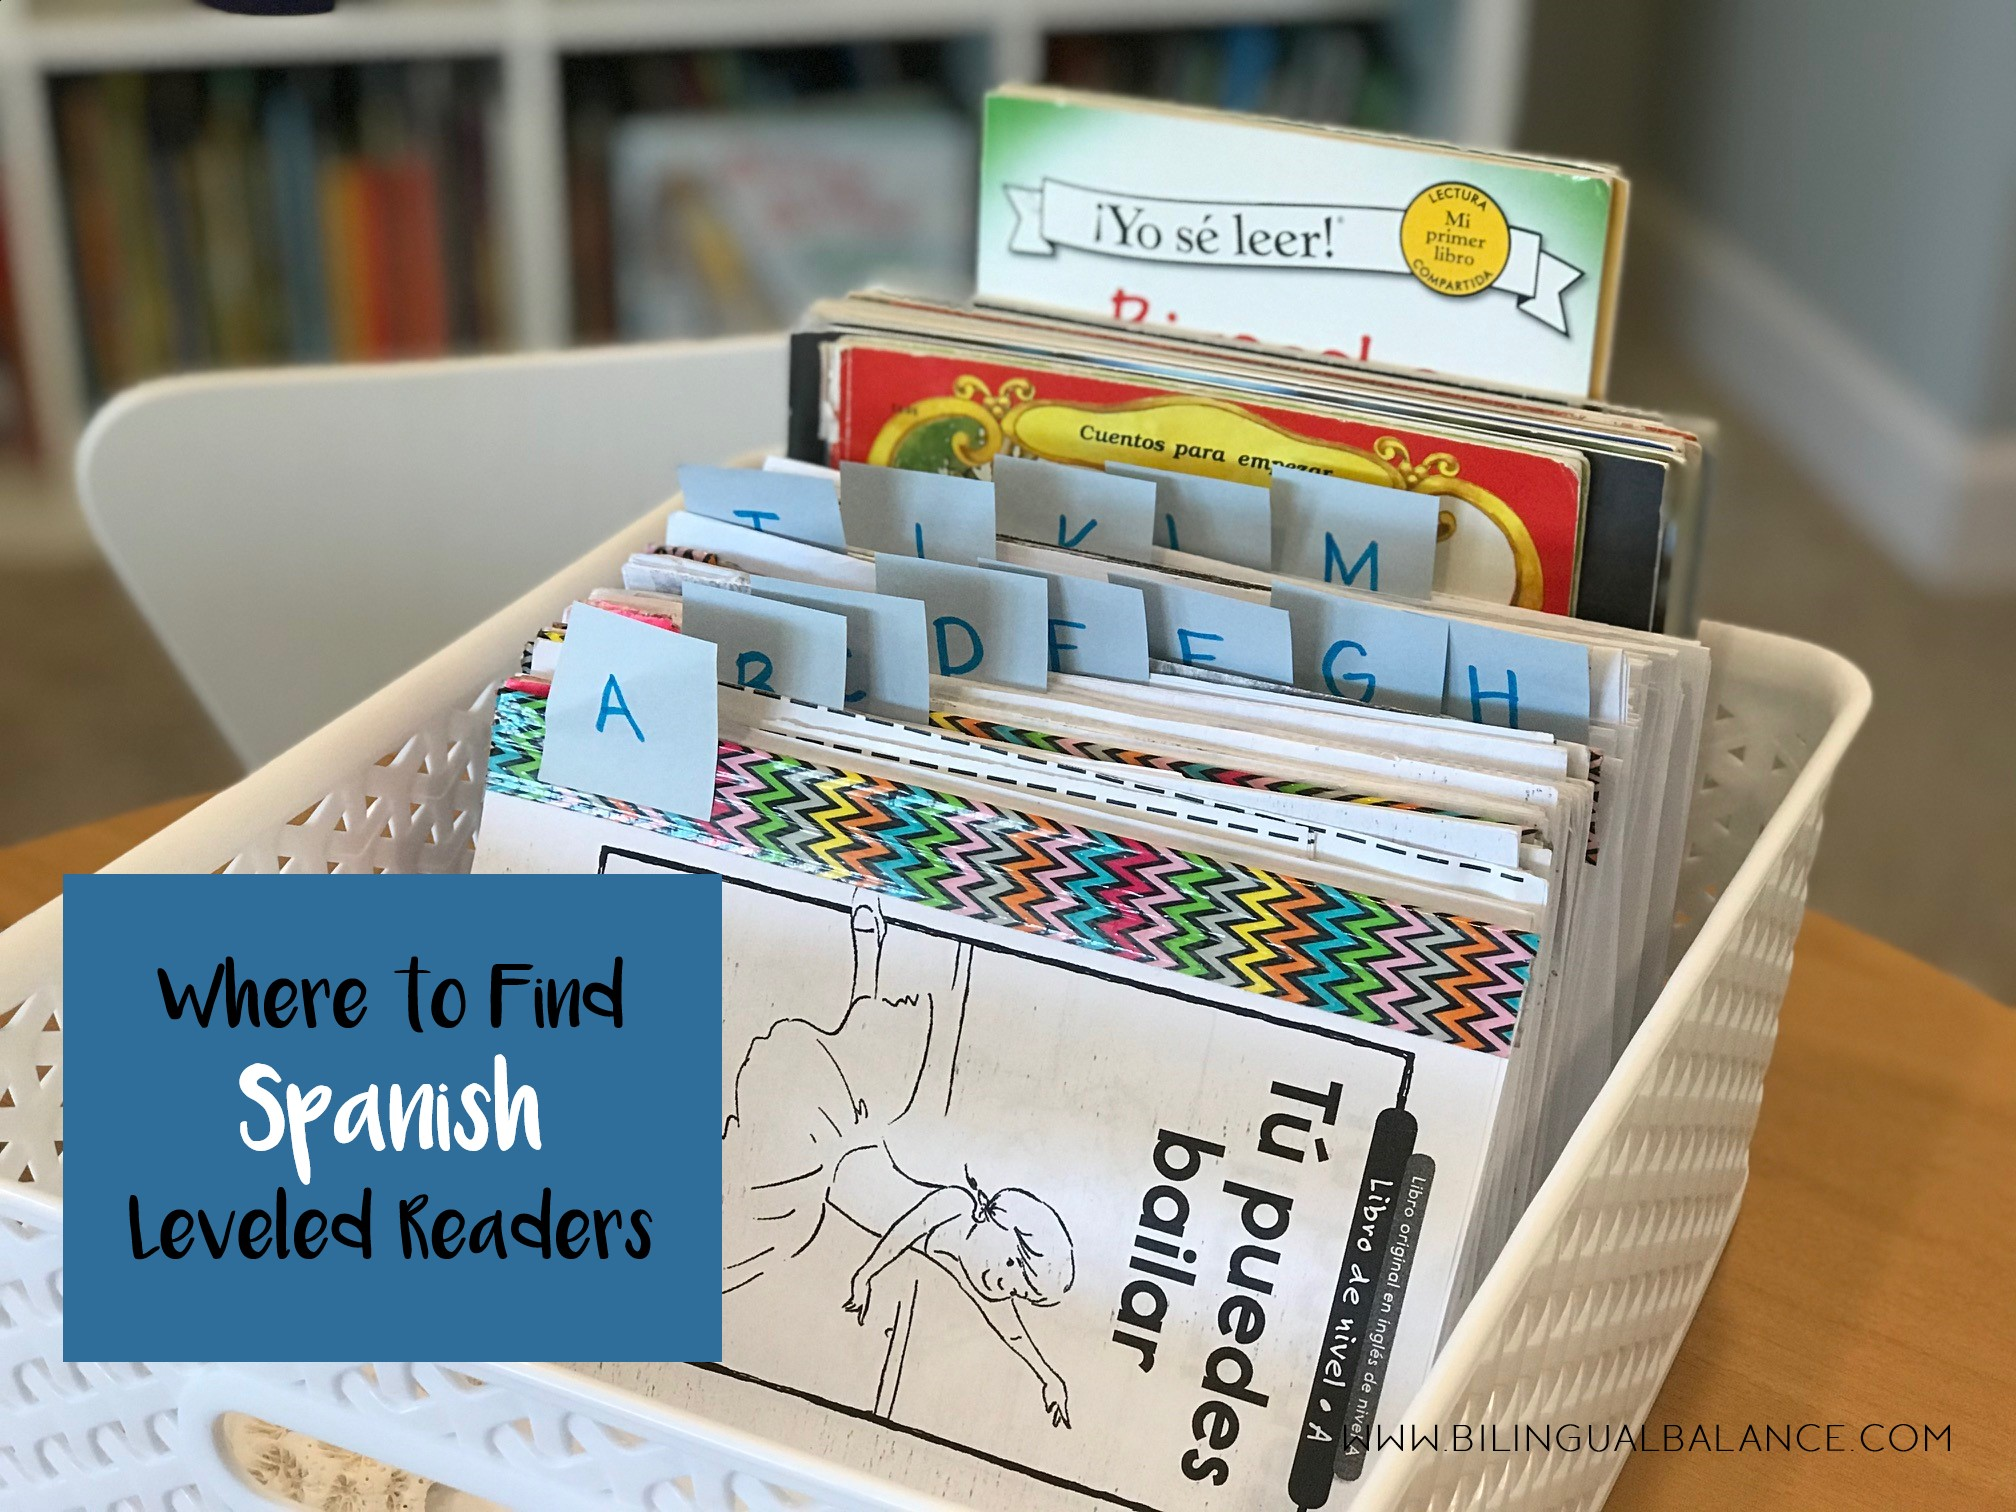 Where to Find Spanish Leveled Readers